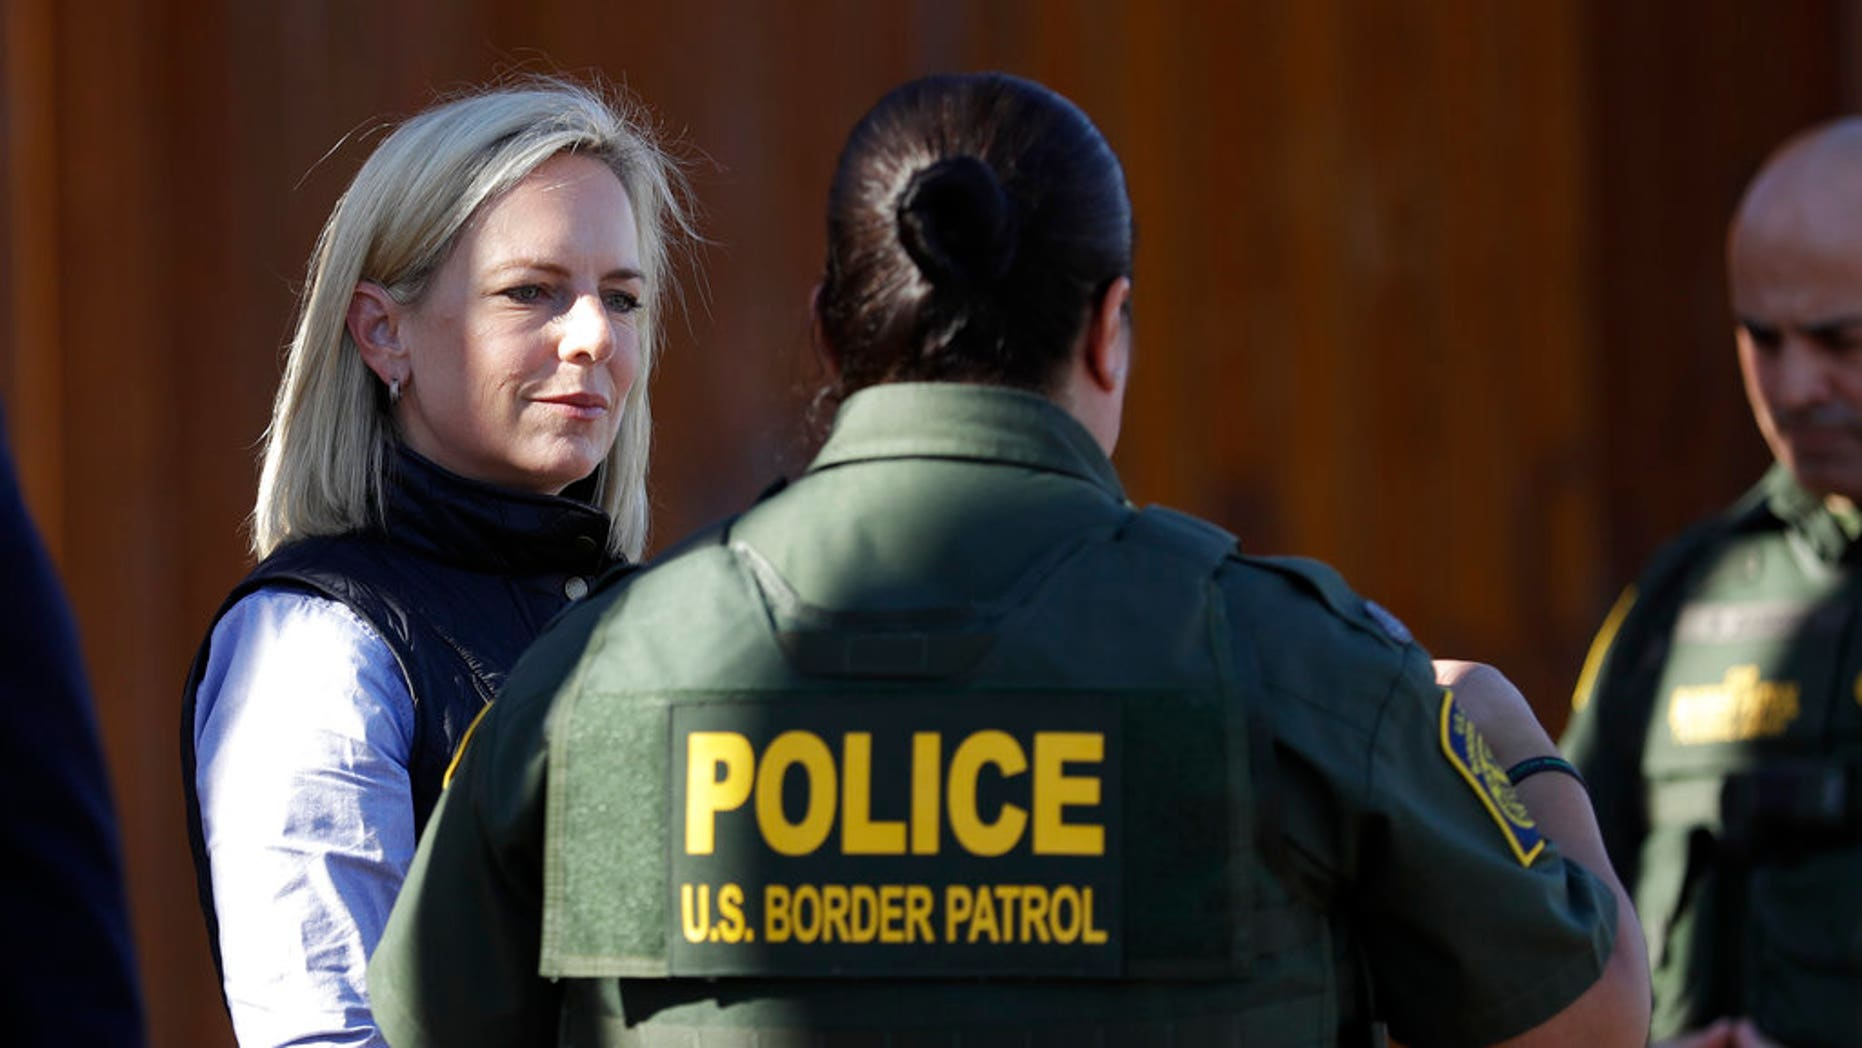 U.S. Department of Homeland Security Secretary Kirstjen Nielsen, left, speaks with Border Patrol agents near a newly fortified border wall structure in Calexico, Calif. (AP Photo/Gregory Bull)